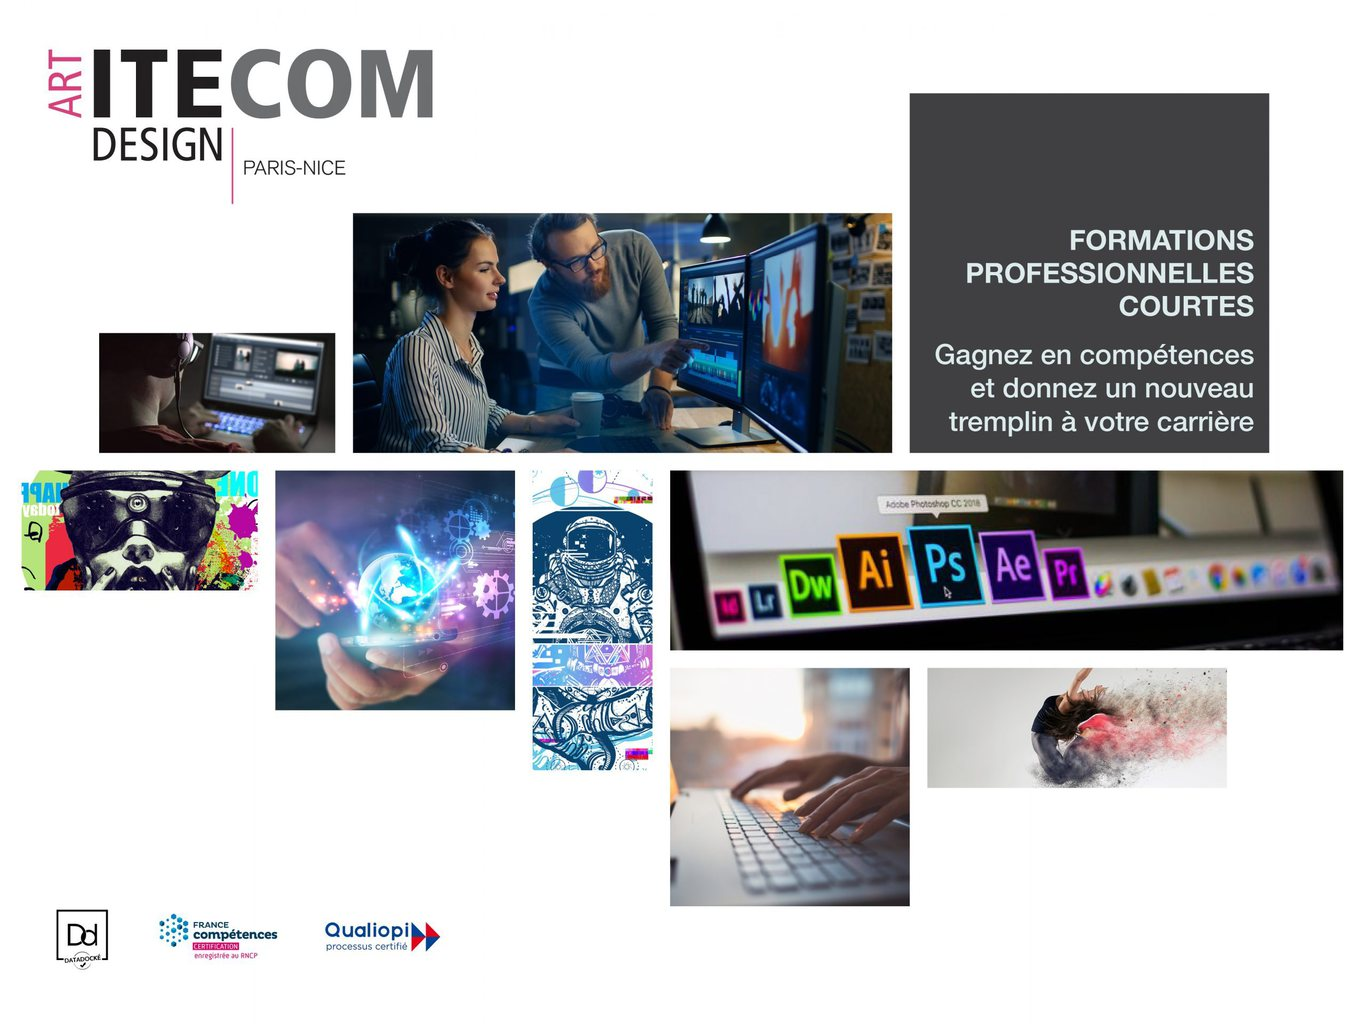 Formation professionnelles courtes - ITECOM ART DESIGN PARIS